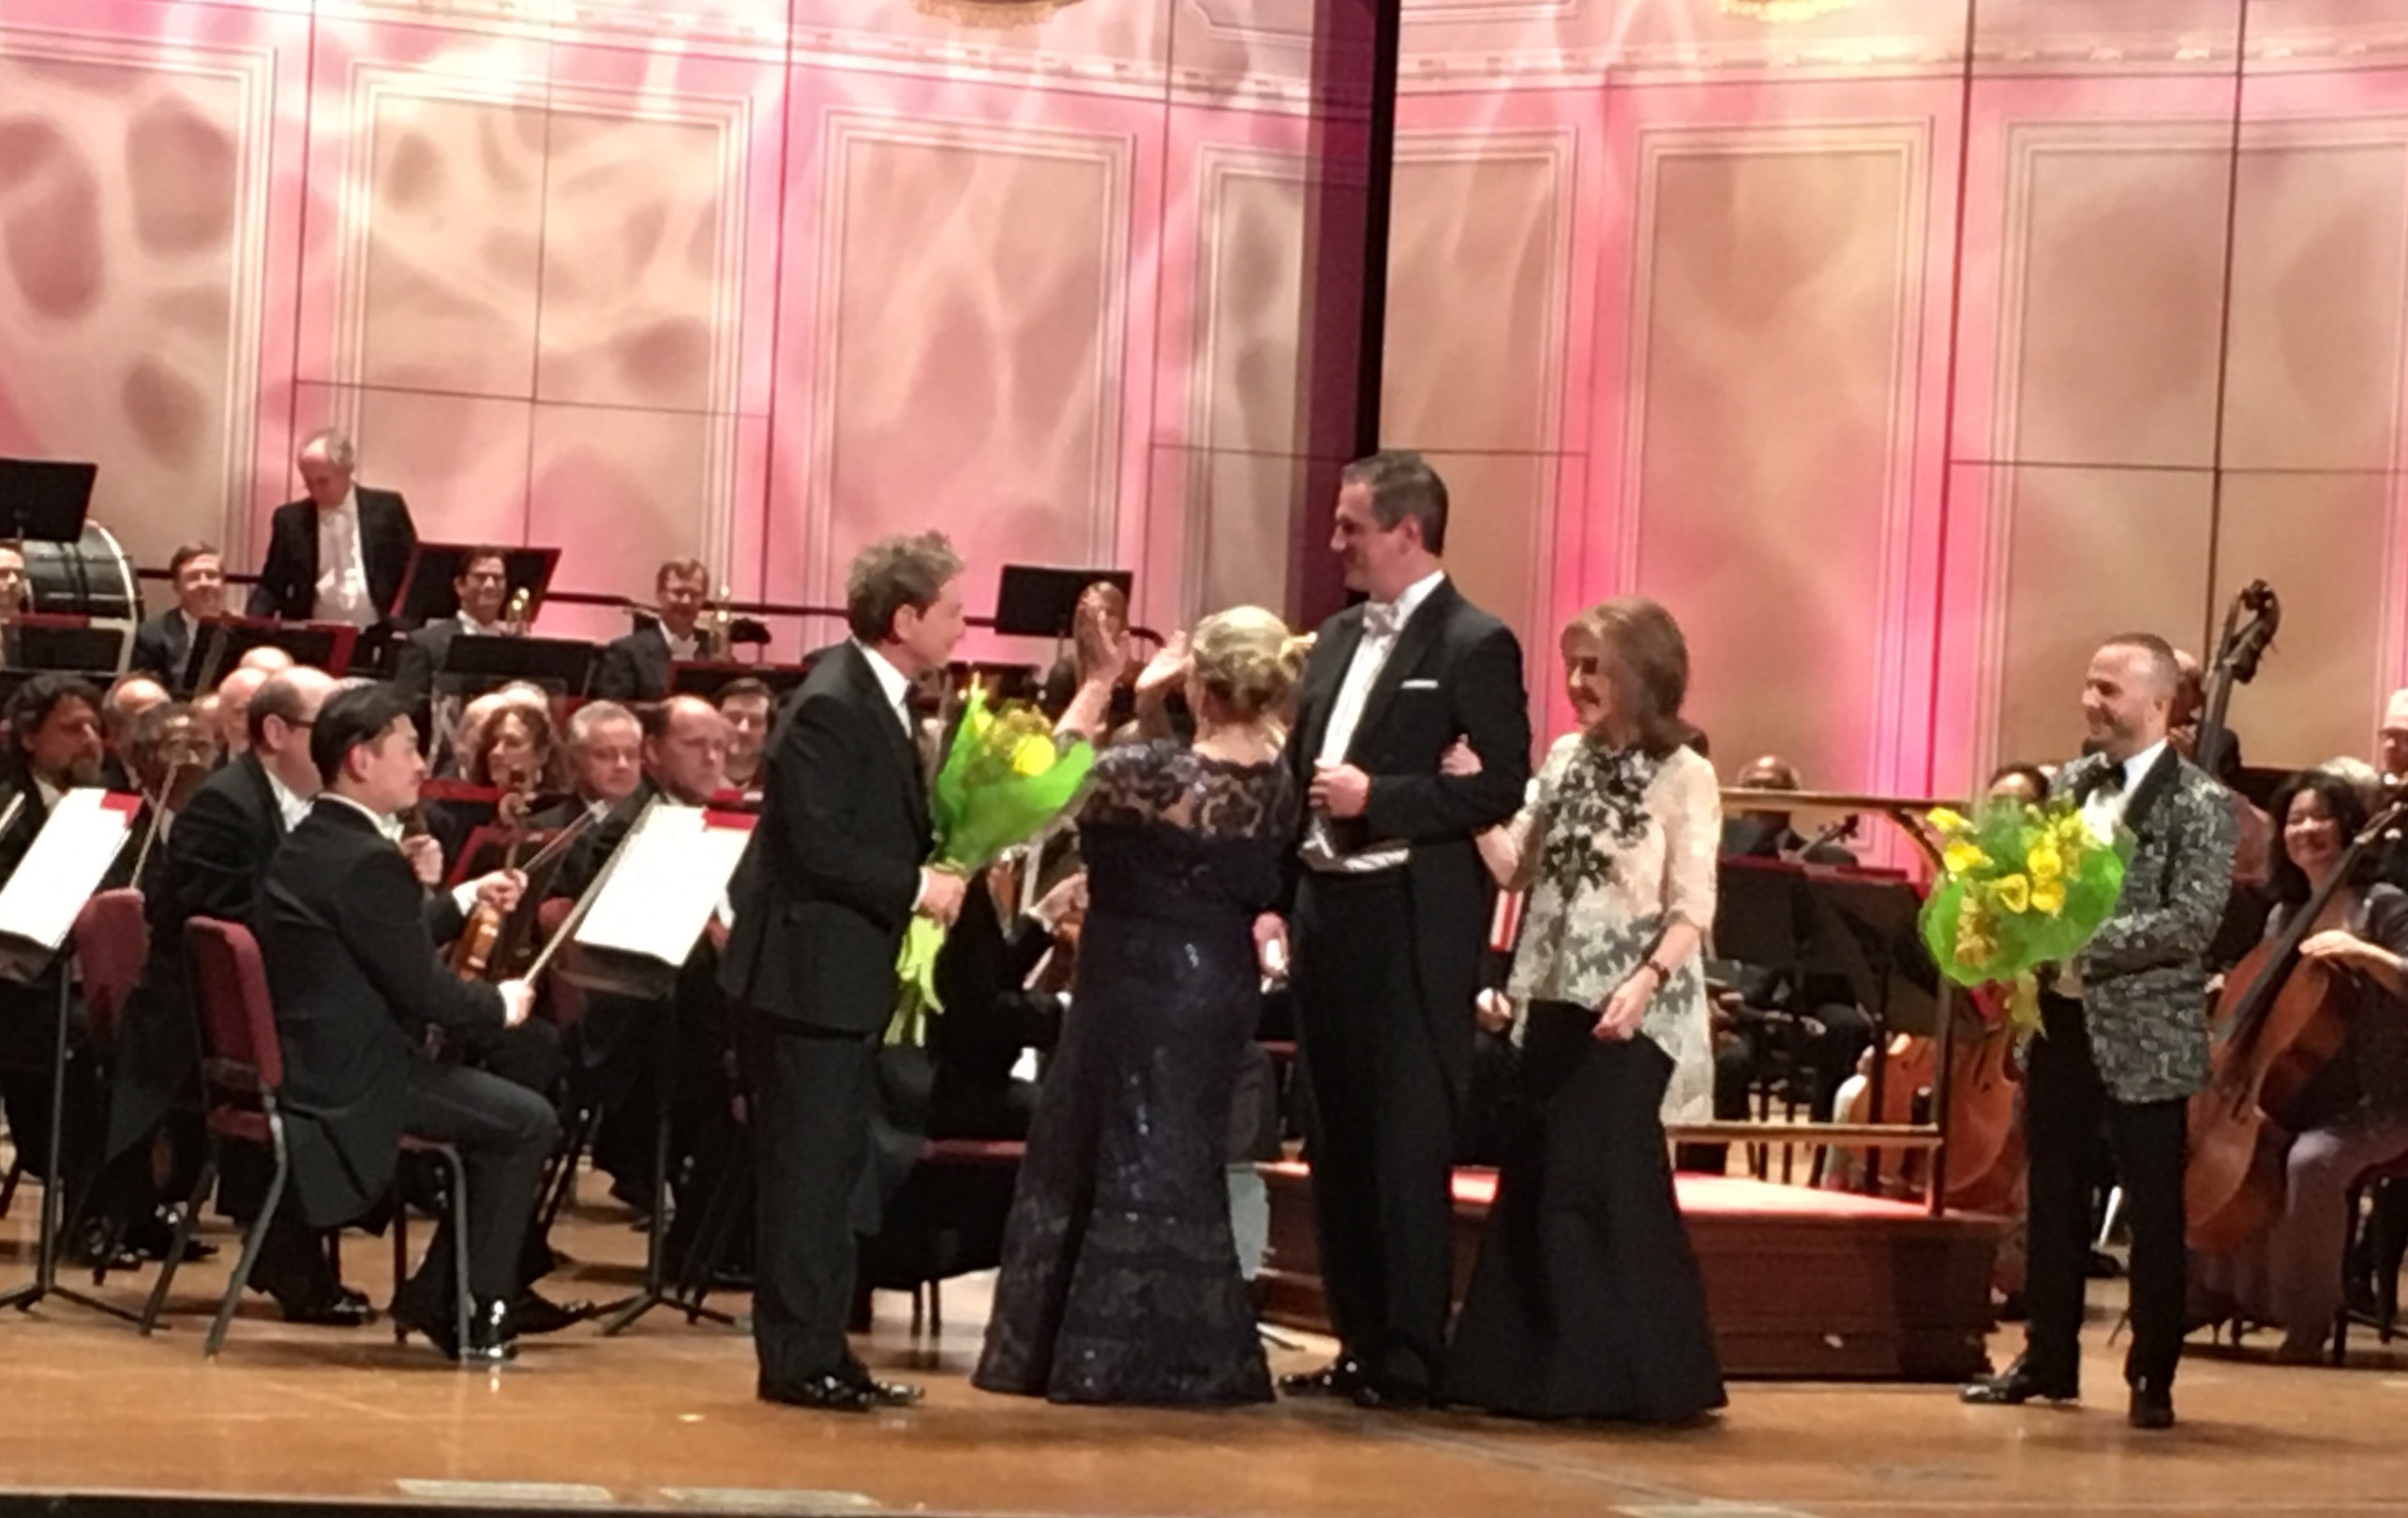 Martin Short accepts kudos and flowers from Academy Ball co-chair Georgiana Noll, and Adele Schaeffer, chair of the Academy of Music Board of Trustee, escorted by a member of the Young Friends Committee.